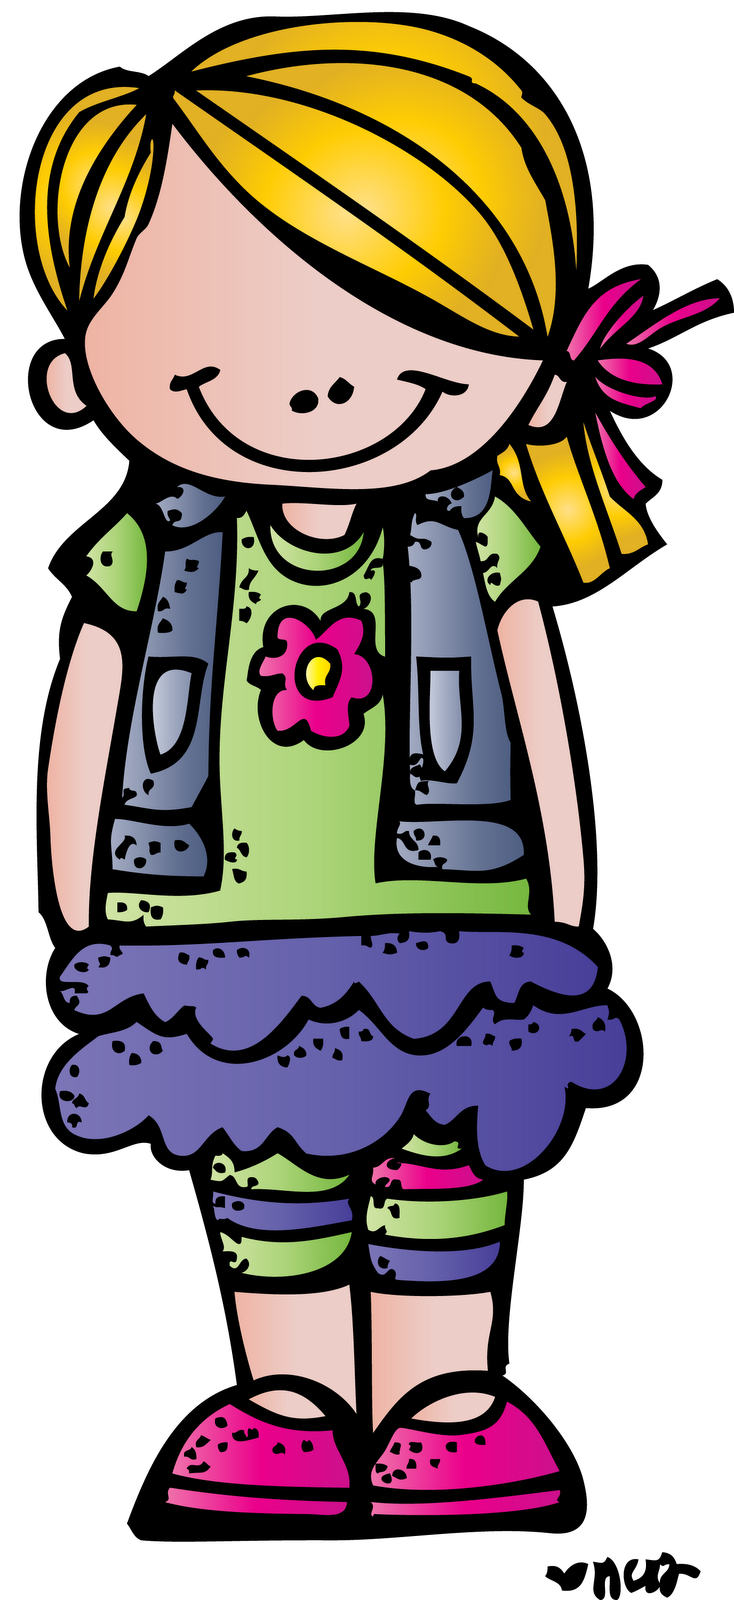 Football clipart thistle girl jpg library stock 28+ Collection of Thistle Girl Writing Clipart | High quality, free ... jpg library stock